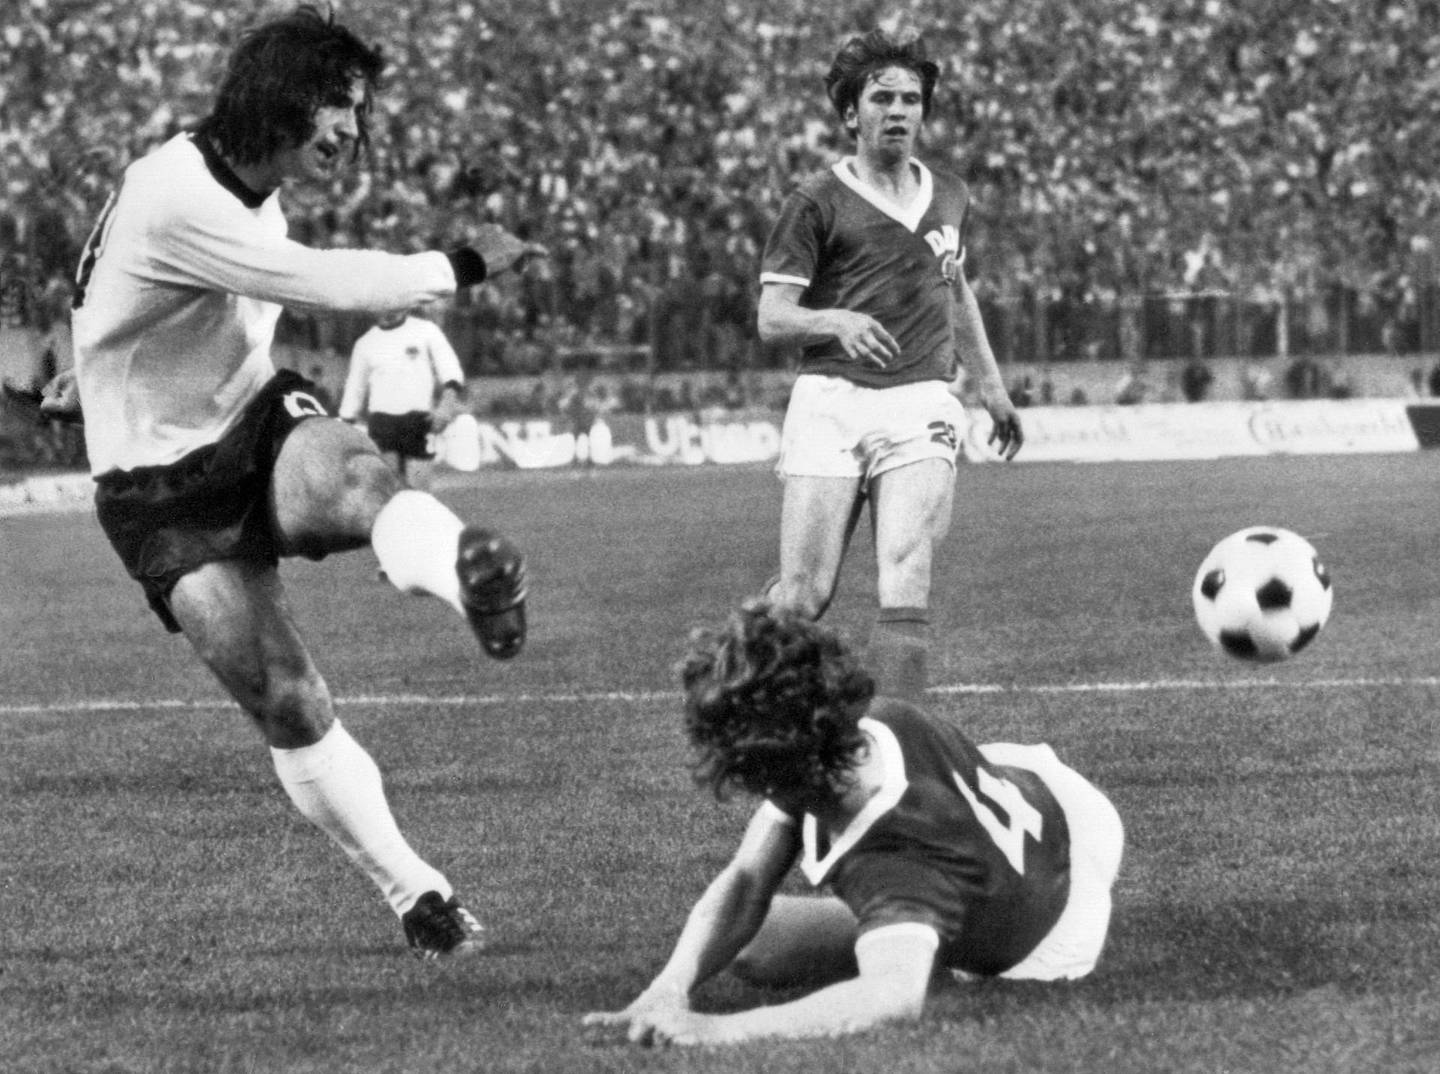 (FILES) In this file photo taken on June 22, 1974 West German forward Gerd Müller (L) kicks the ball past East German defender Konrad Weise (R) as forward Martin Hoffmann looks on during the World Cup first round match between East Germany and West Germany in Hamburg.   / AFP / STAFF